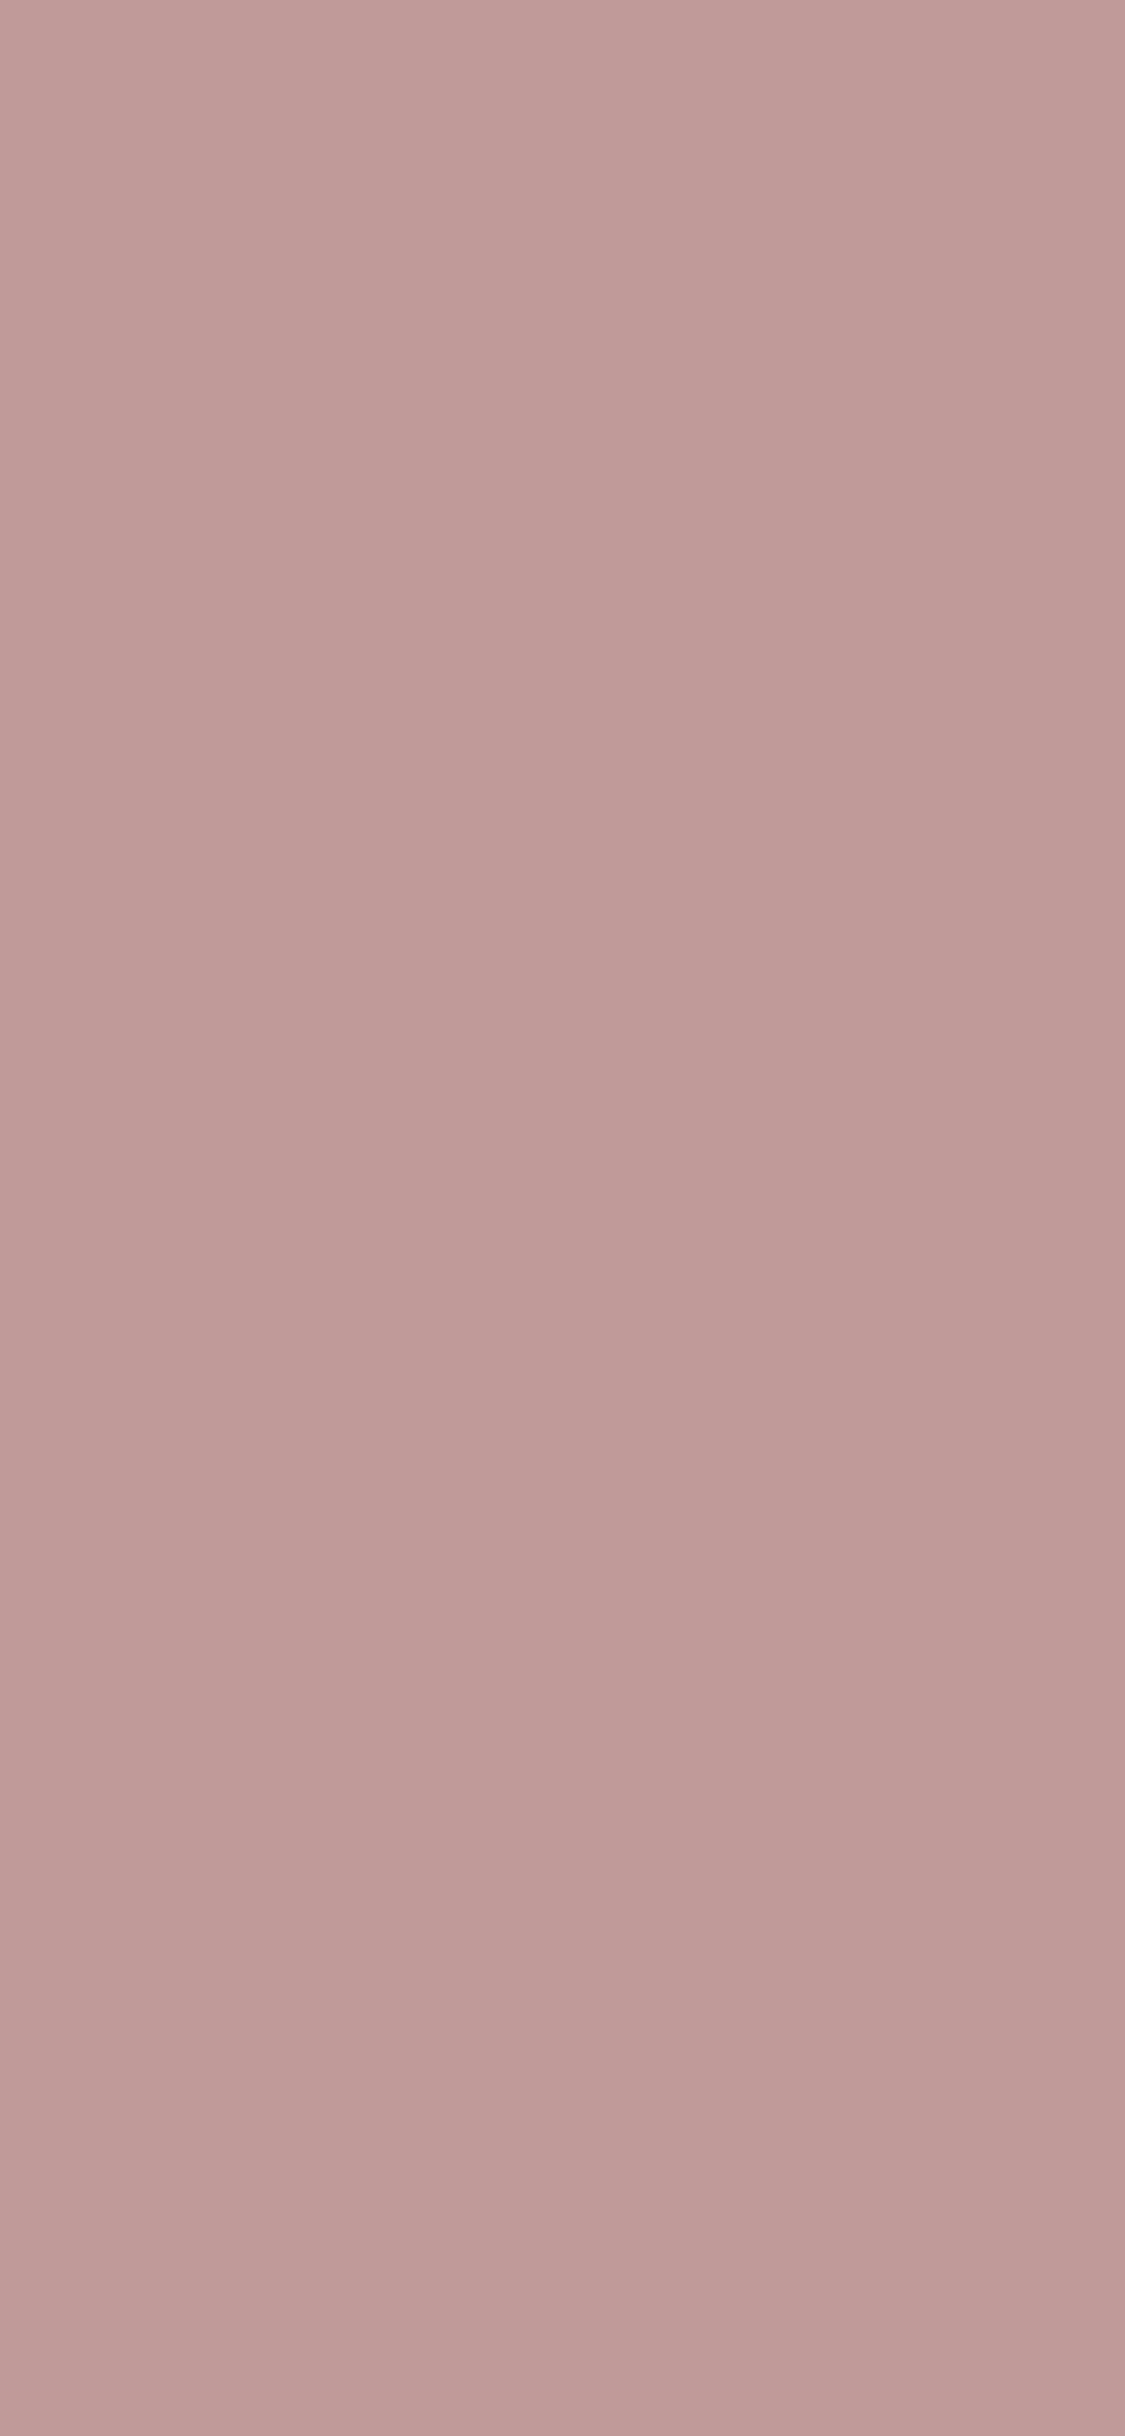 1125x2436 Tuscany Solid Color Background